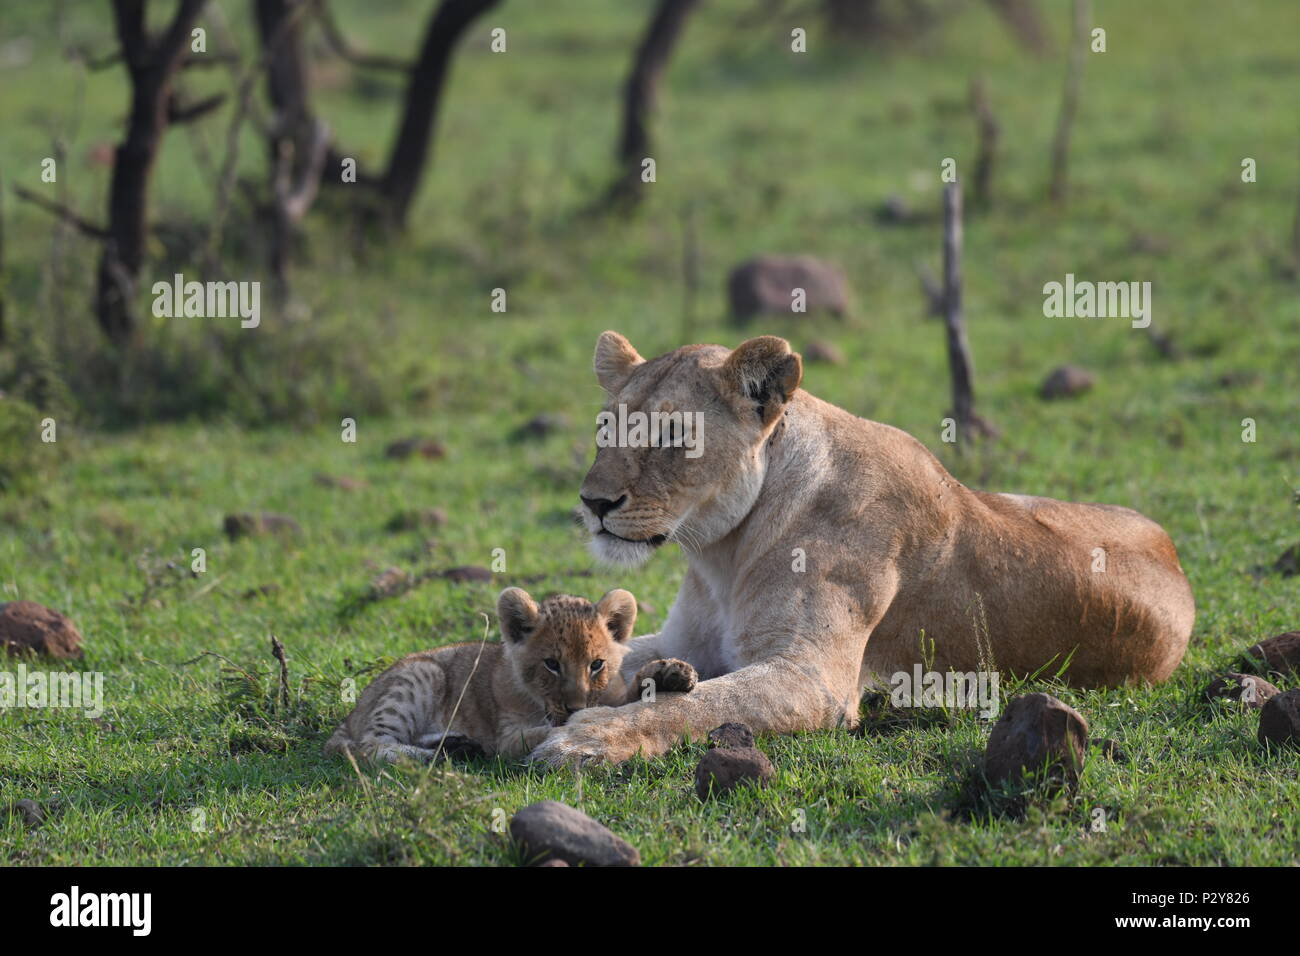 Lioness and cub resting on the Maasai Mara plains (Panthera leo). Kenyan Safari, picture taken in the Olare Motorogi Conservancy. Stock Photo